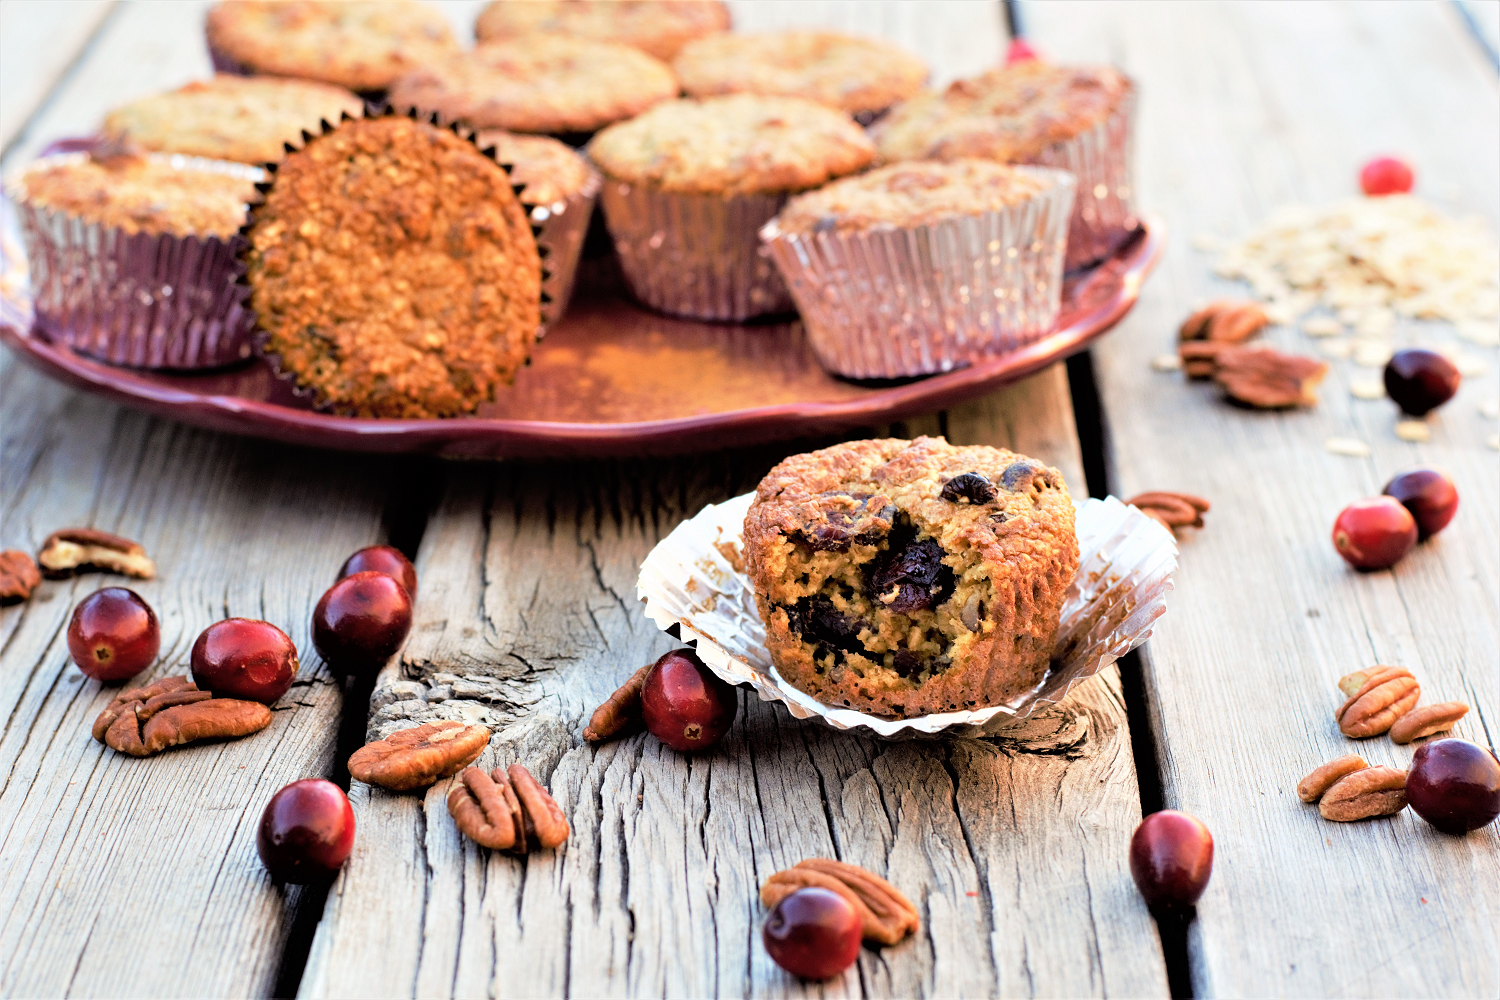 Easy, healthy, happy breakfasts: 5-minute gluten-free cranberry pecan muffins made in the blender & sweetened with maple syrup.